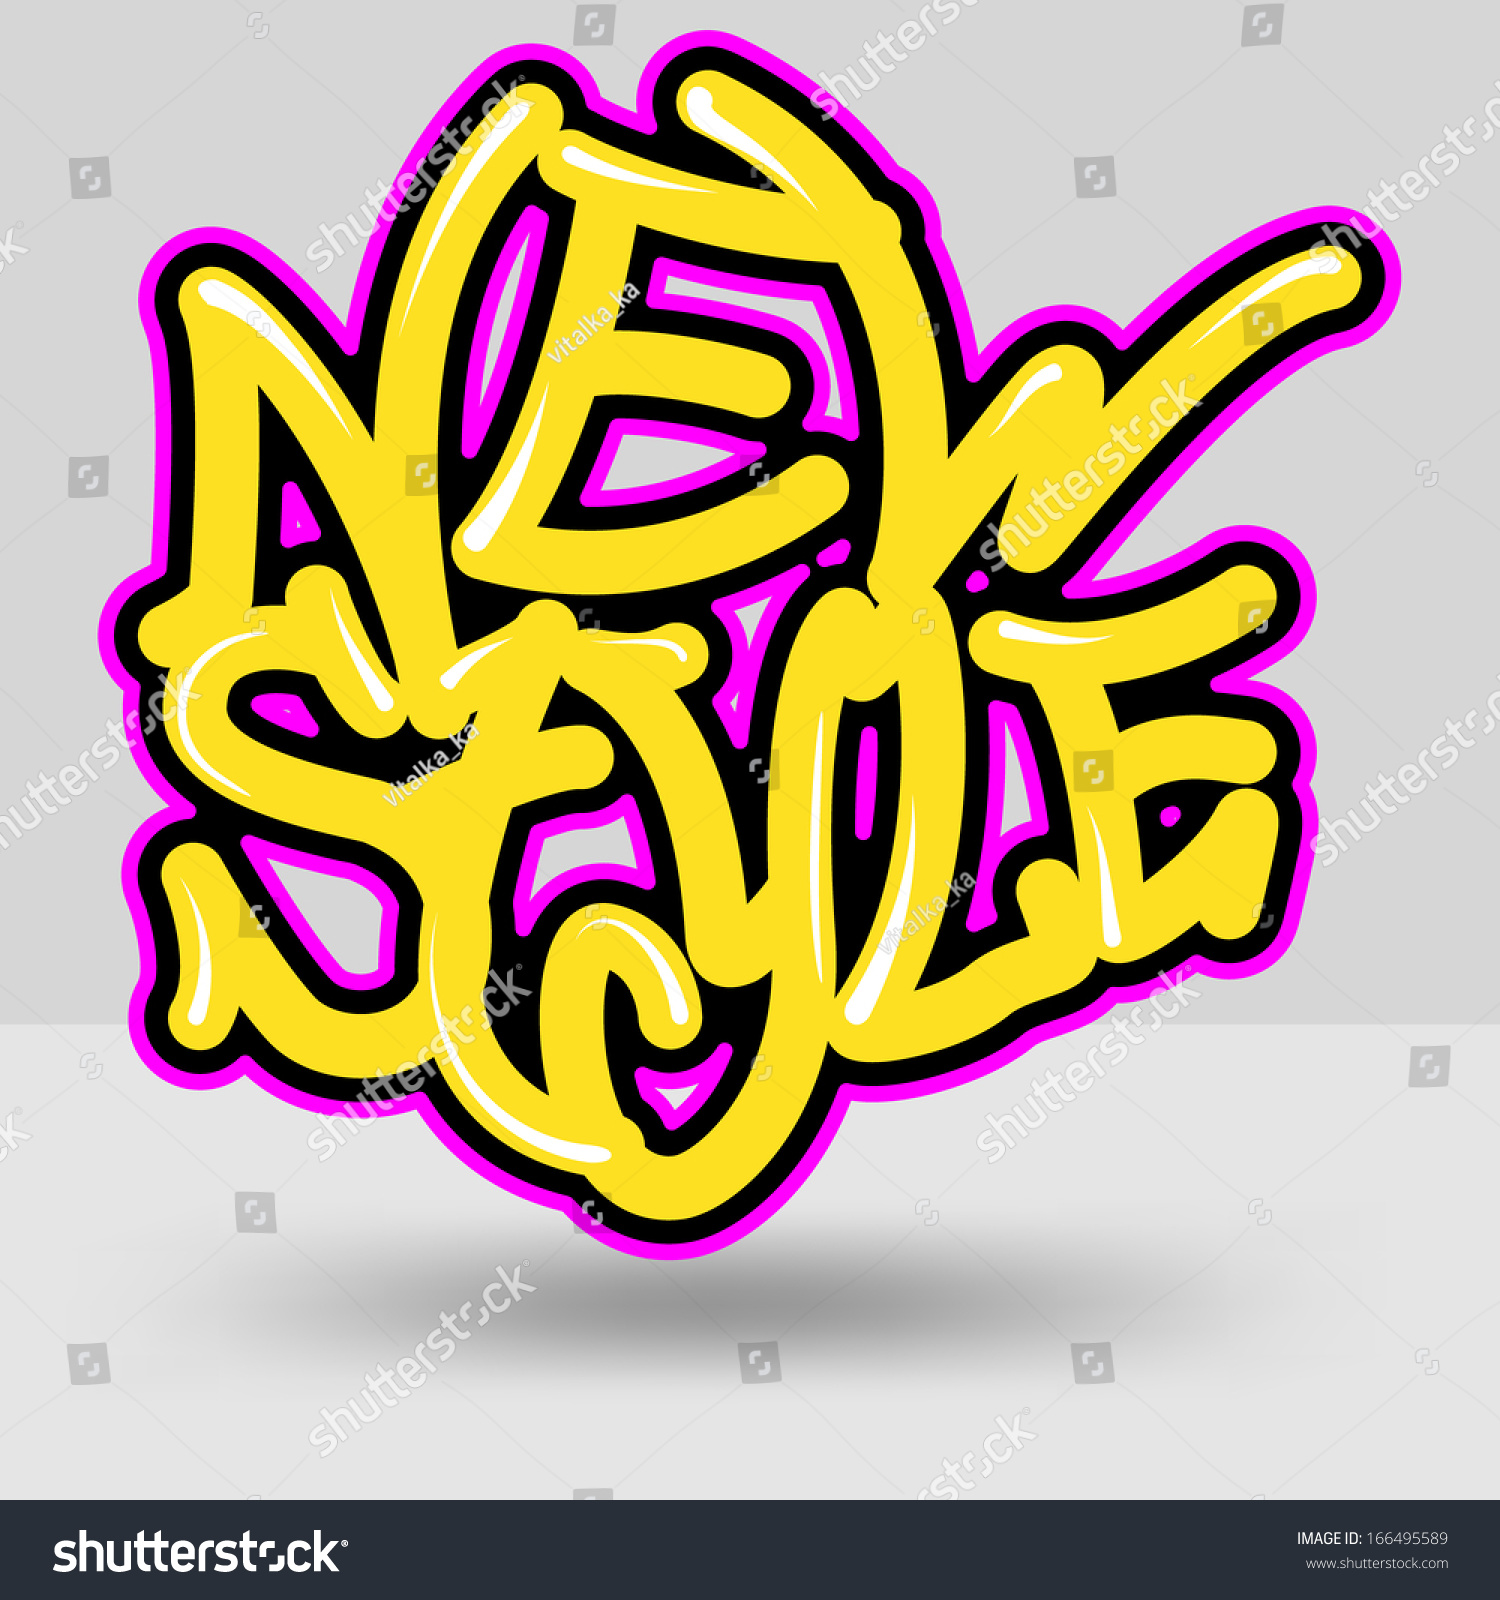 Youth culture urban scene graffiti backgrounds stock vector youth culture urban scene graffiti backgrounds isolated on white voltagebd Image collections